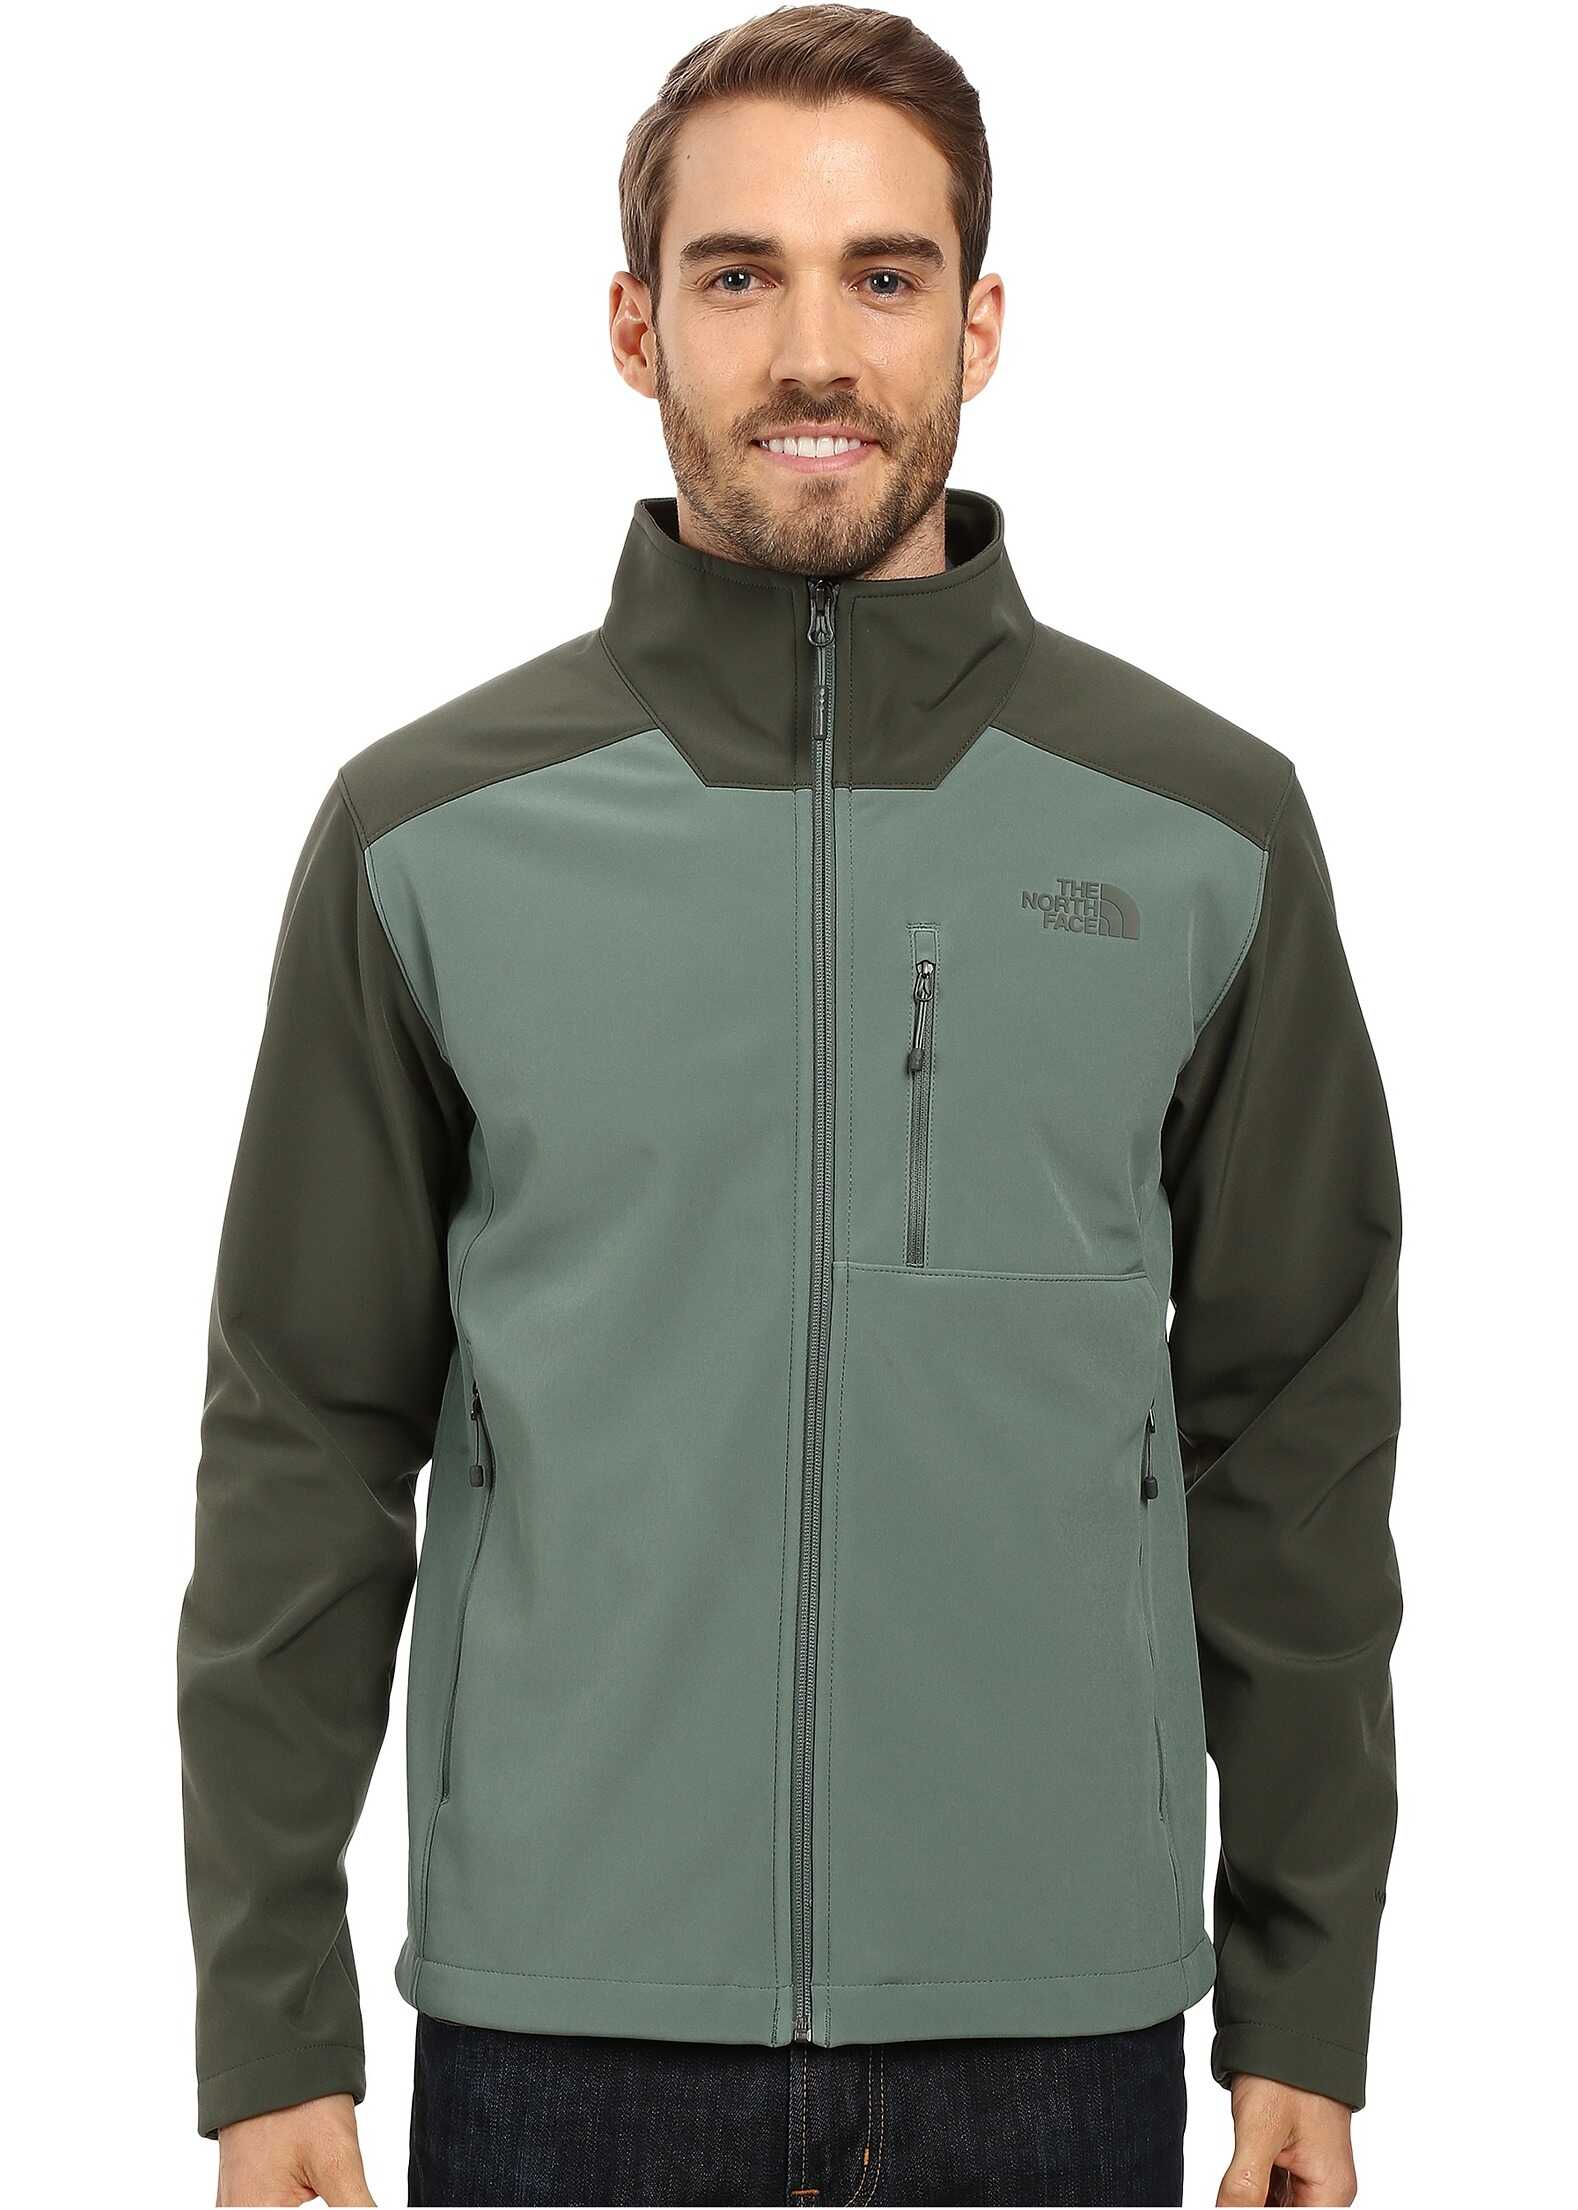 The North Face Apex Bionic 2 Jacket Duck Green/Climbing Ivy Green (Prior Season)